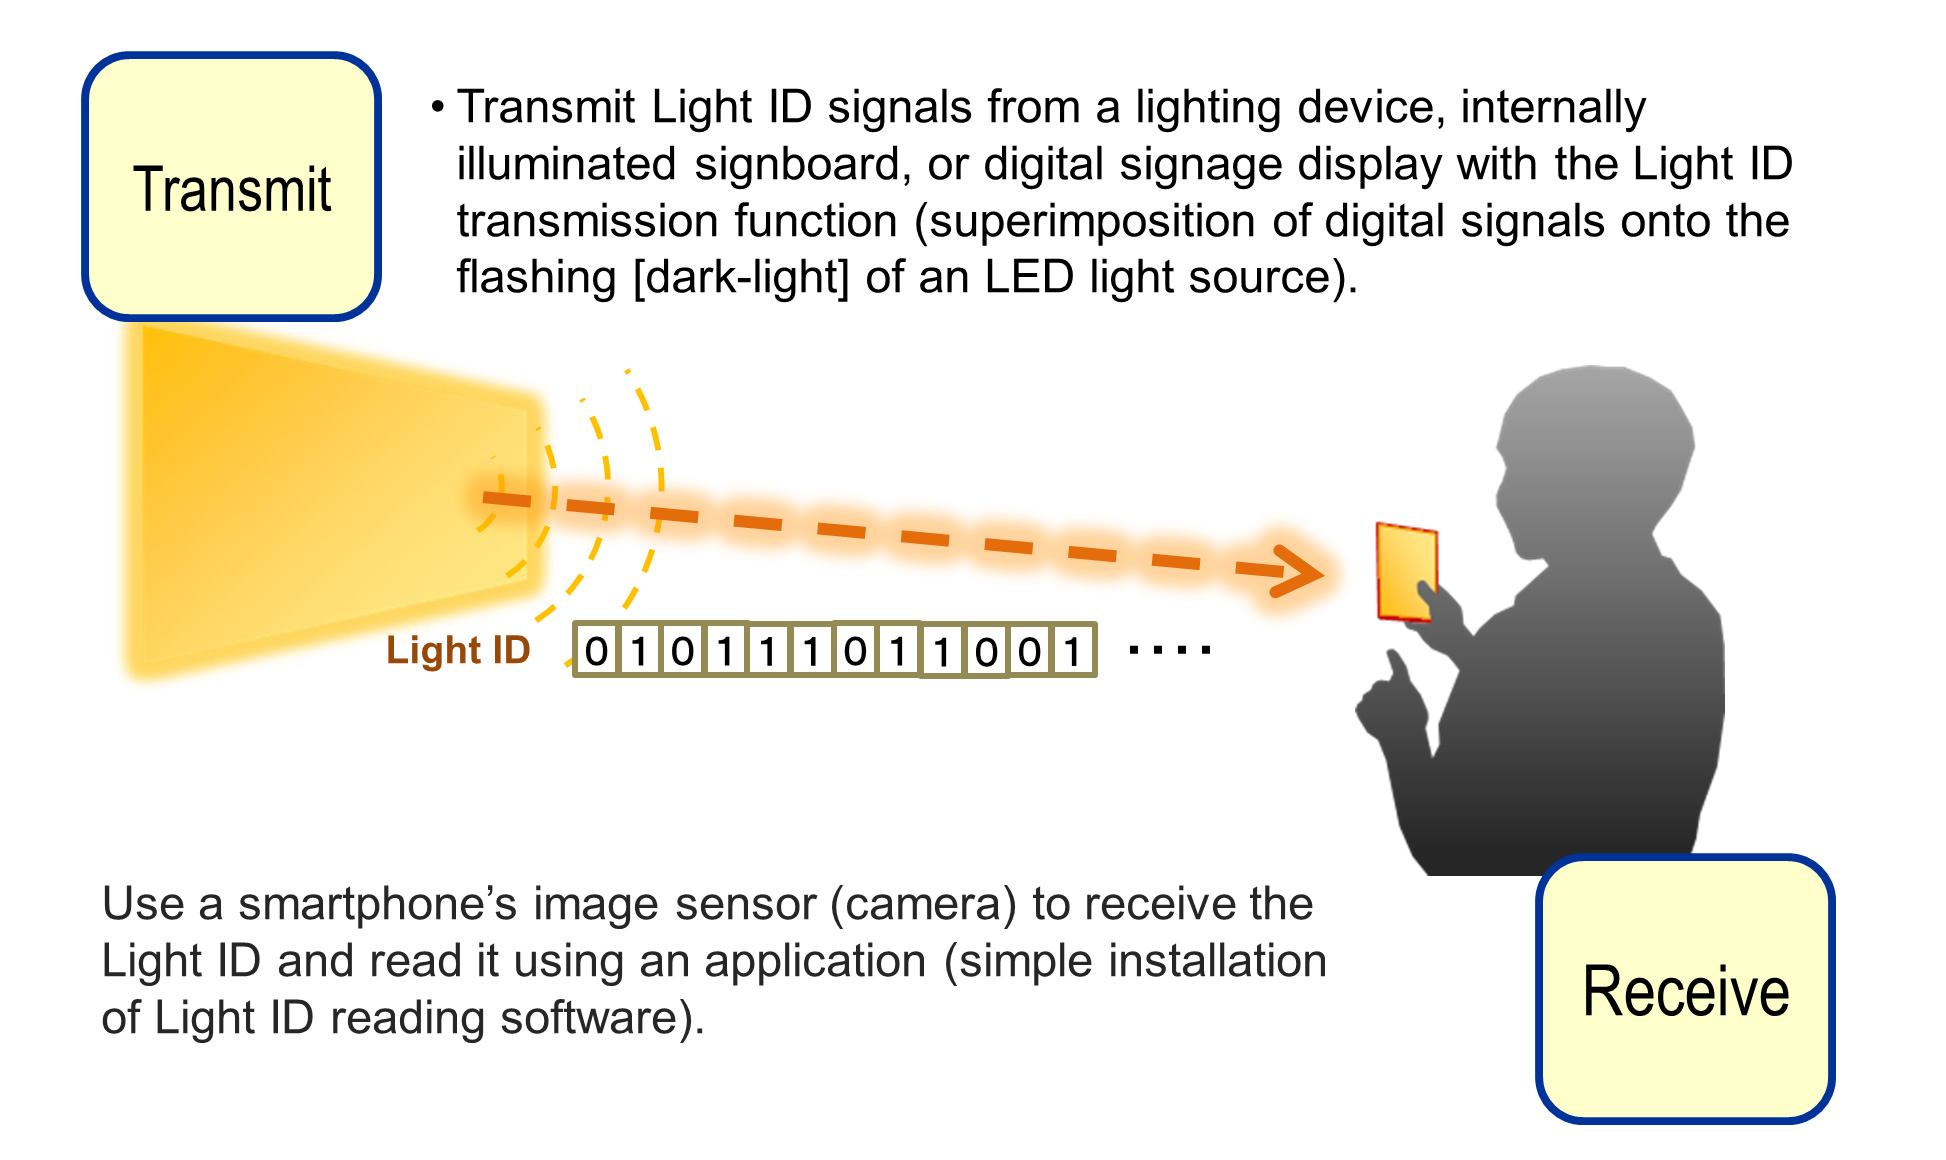 Panasonic Showcases Visible Light ID Technology, Which Only ... on lighting control, lighting history, lighting element, lighting circuit, lighting sign, lighting parts, lighting pattern, lighting scale, lighting umbrella light kit, lighting outline, lighting business, lighting film, lighting product, lighting software, lighting information, lighting wiring, lighting display, lighting color, lighting system, lighting grid,